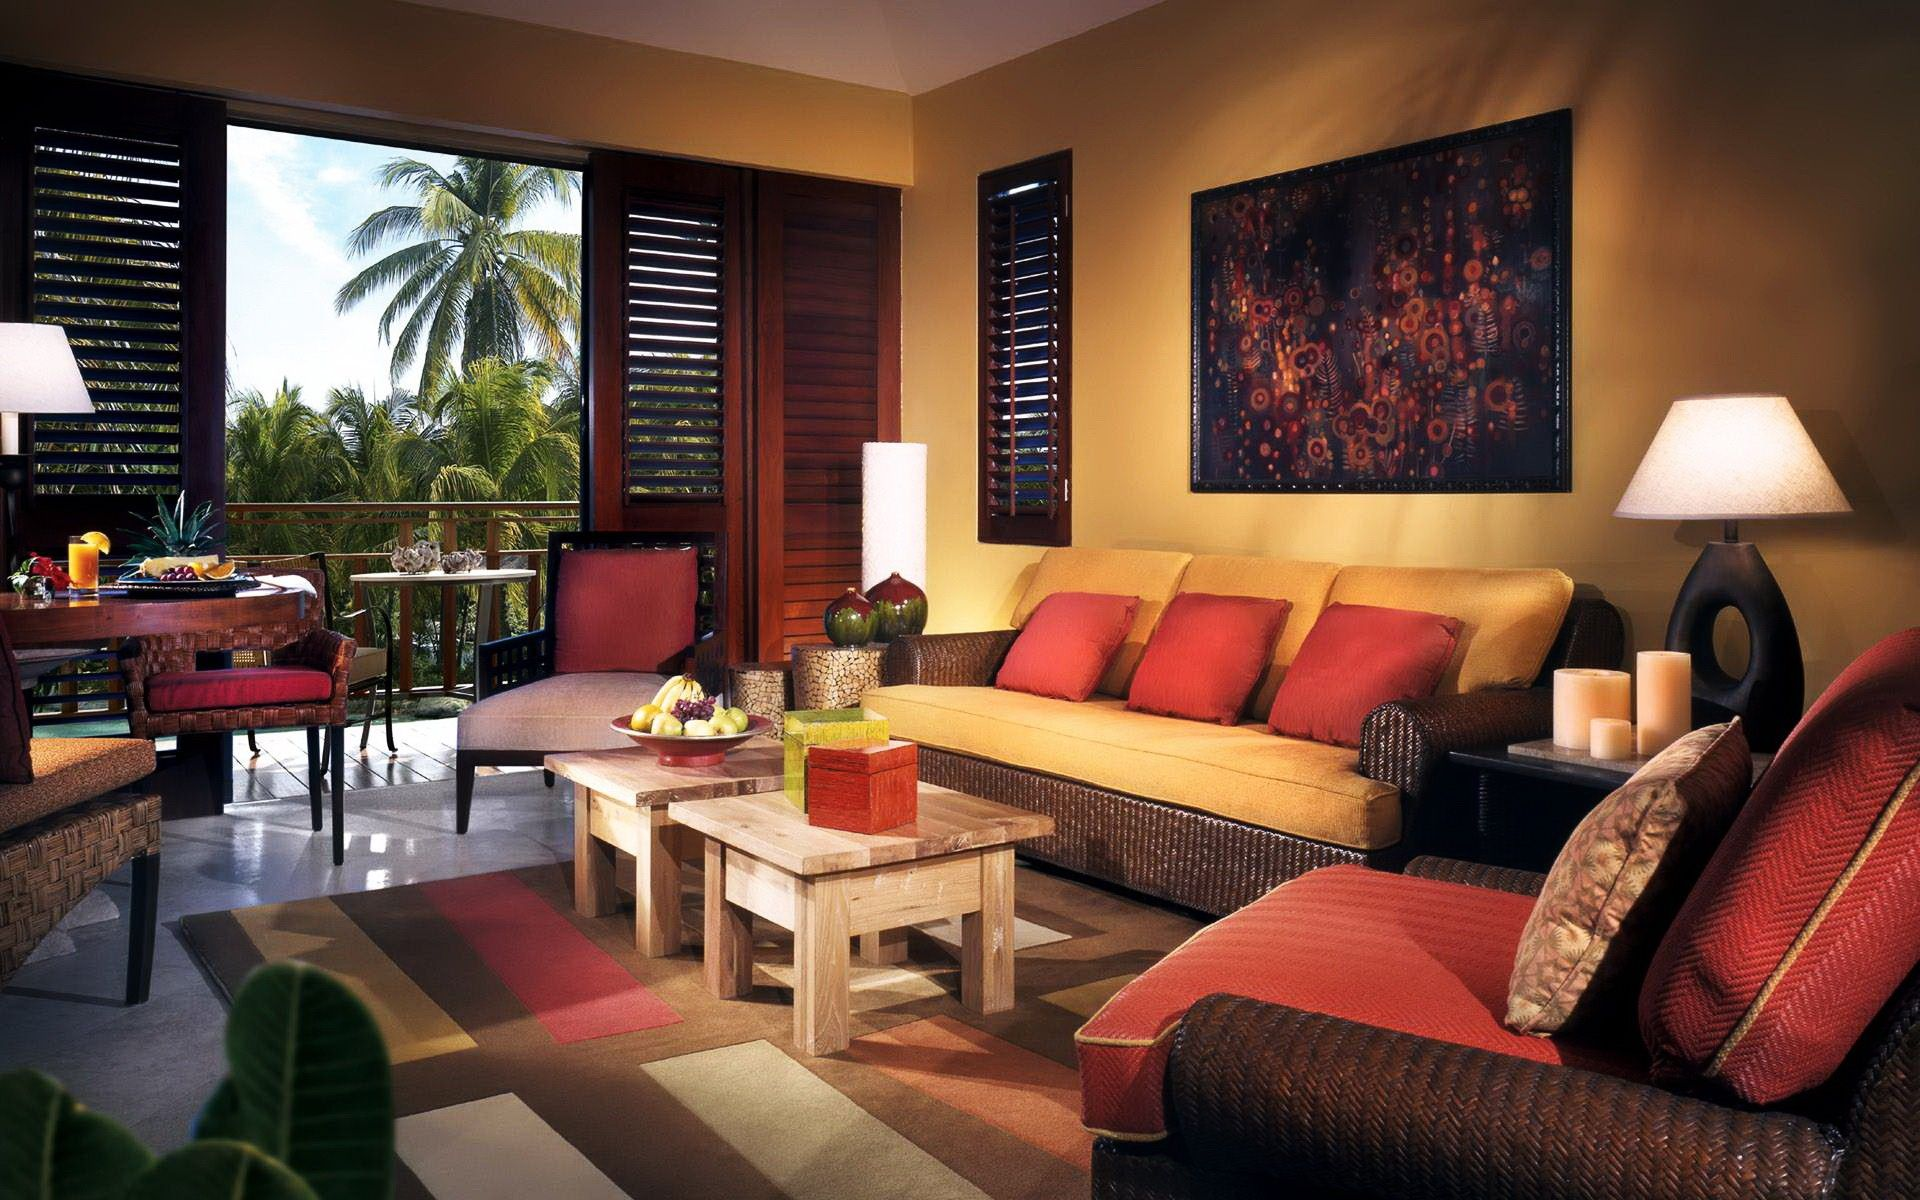 Apartment living room at night - Furniture Living Room Tropical Living Room With Brown Rattan Sofa With Yellow And Red Upholstered Seat